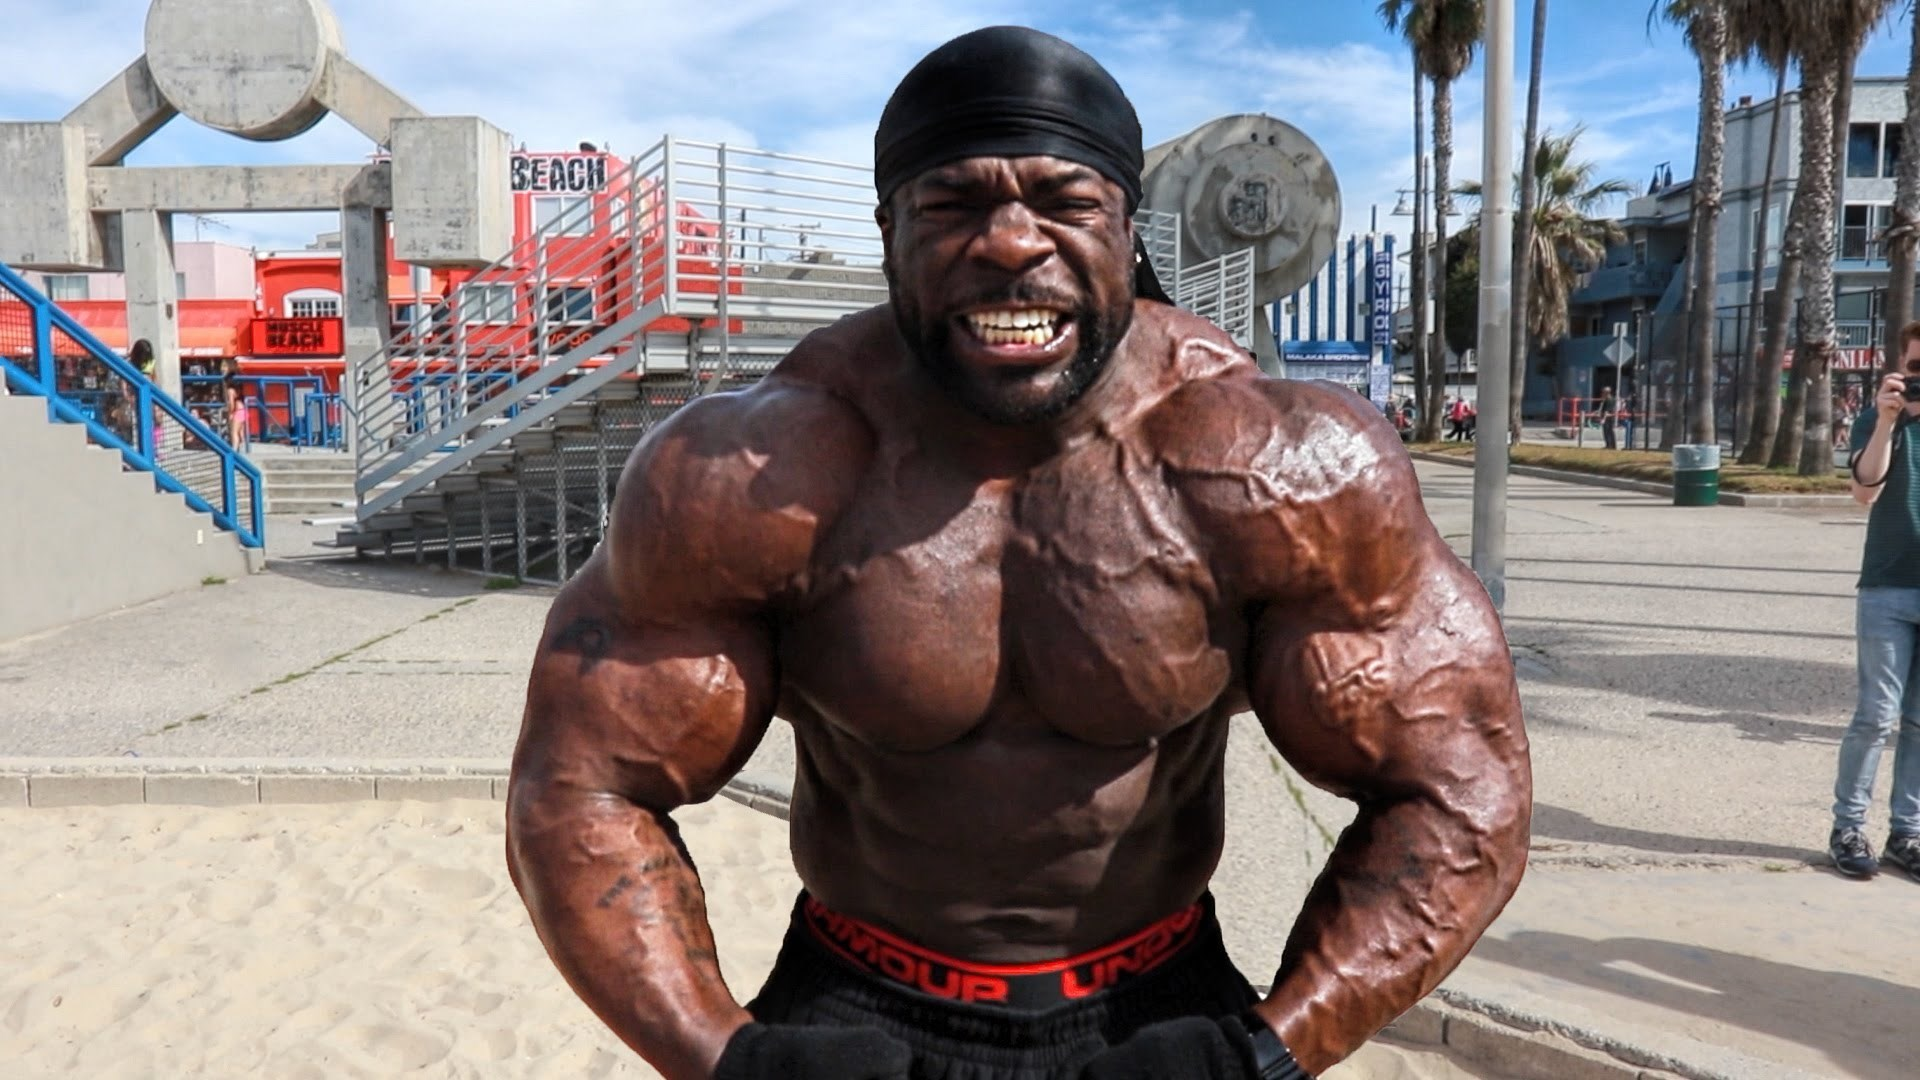 Kali Muscle | Known people - famous people news and